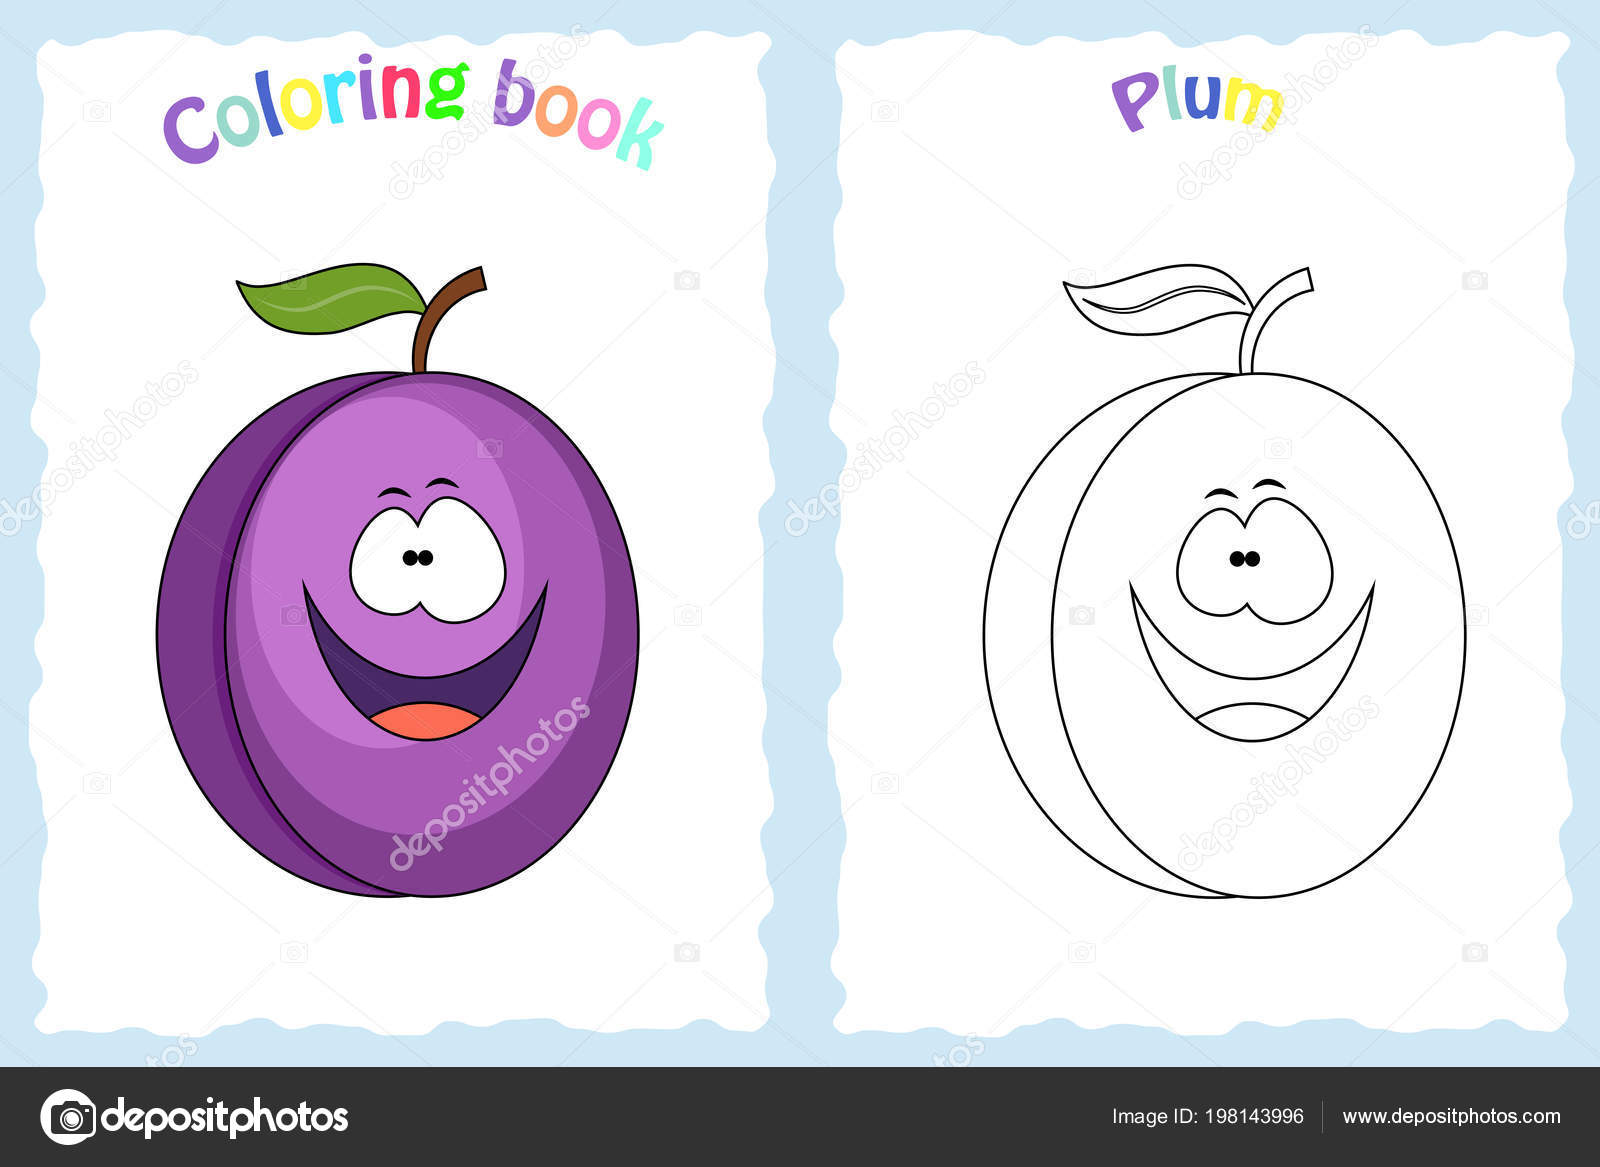 Coloring Book Page For Children With Colorful Plum And Sketch